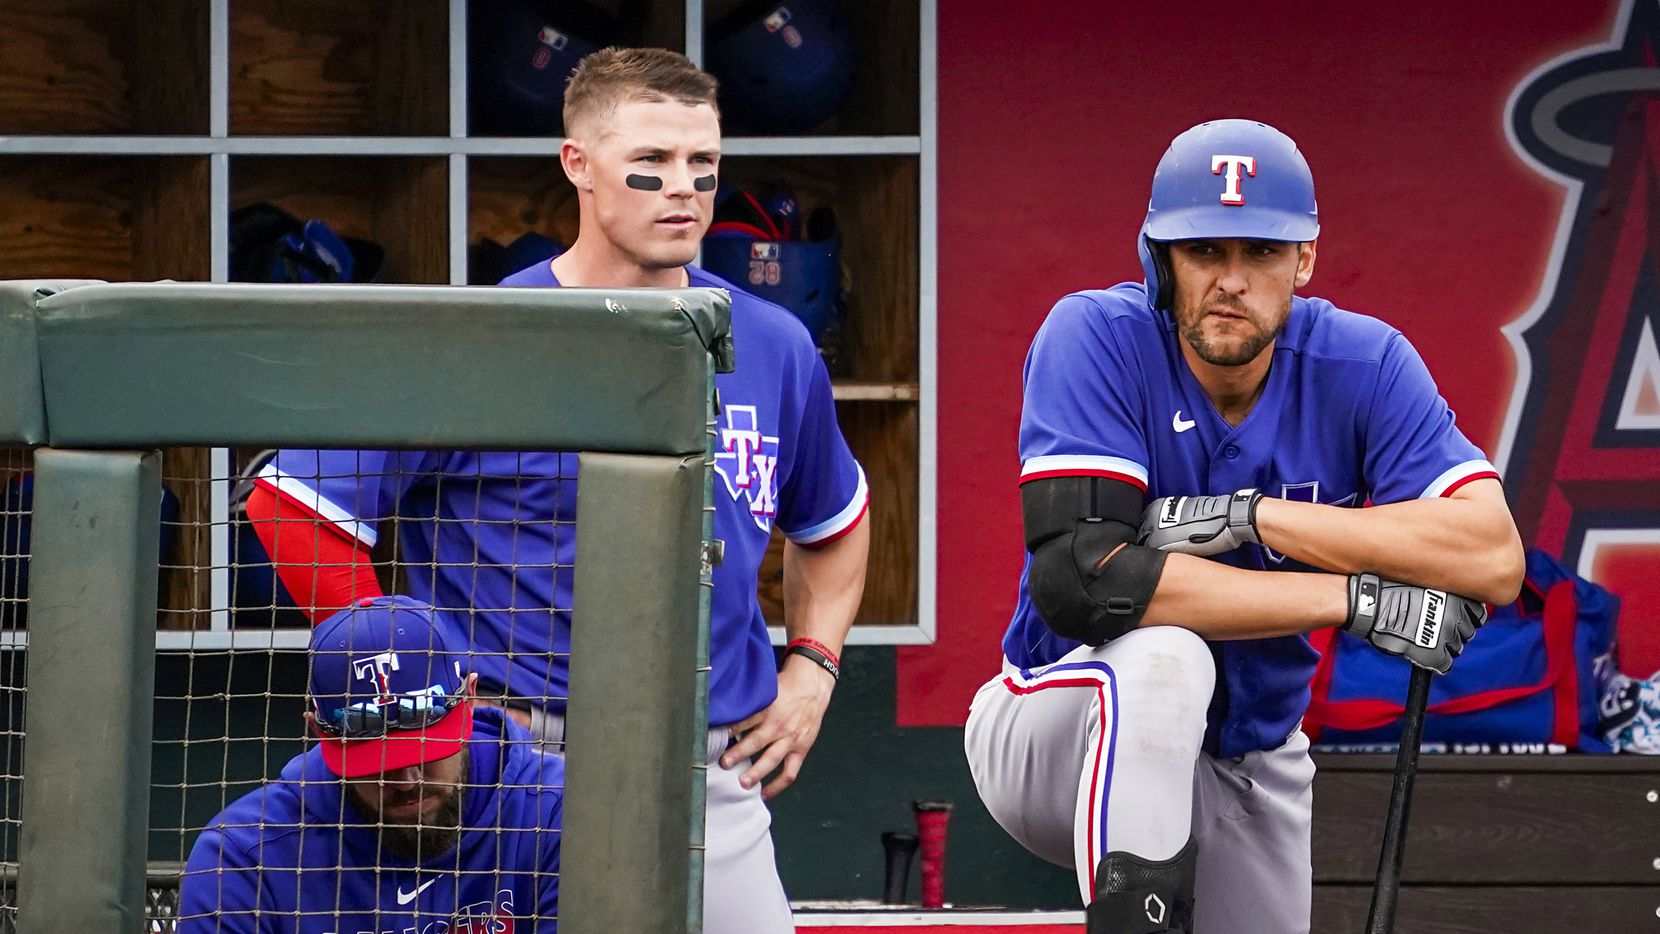 Texas Rangers infielder Greg Bird (right) and outfielder Scott Heineman watch from the dugout during the sixth inning of a spring training game against the Los Angeles Angels at Tempe Diablo Stadium on Friday, Feb. 28, 2020, in Tempe, Ariz.